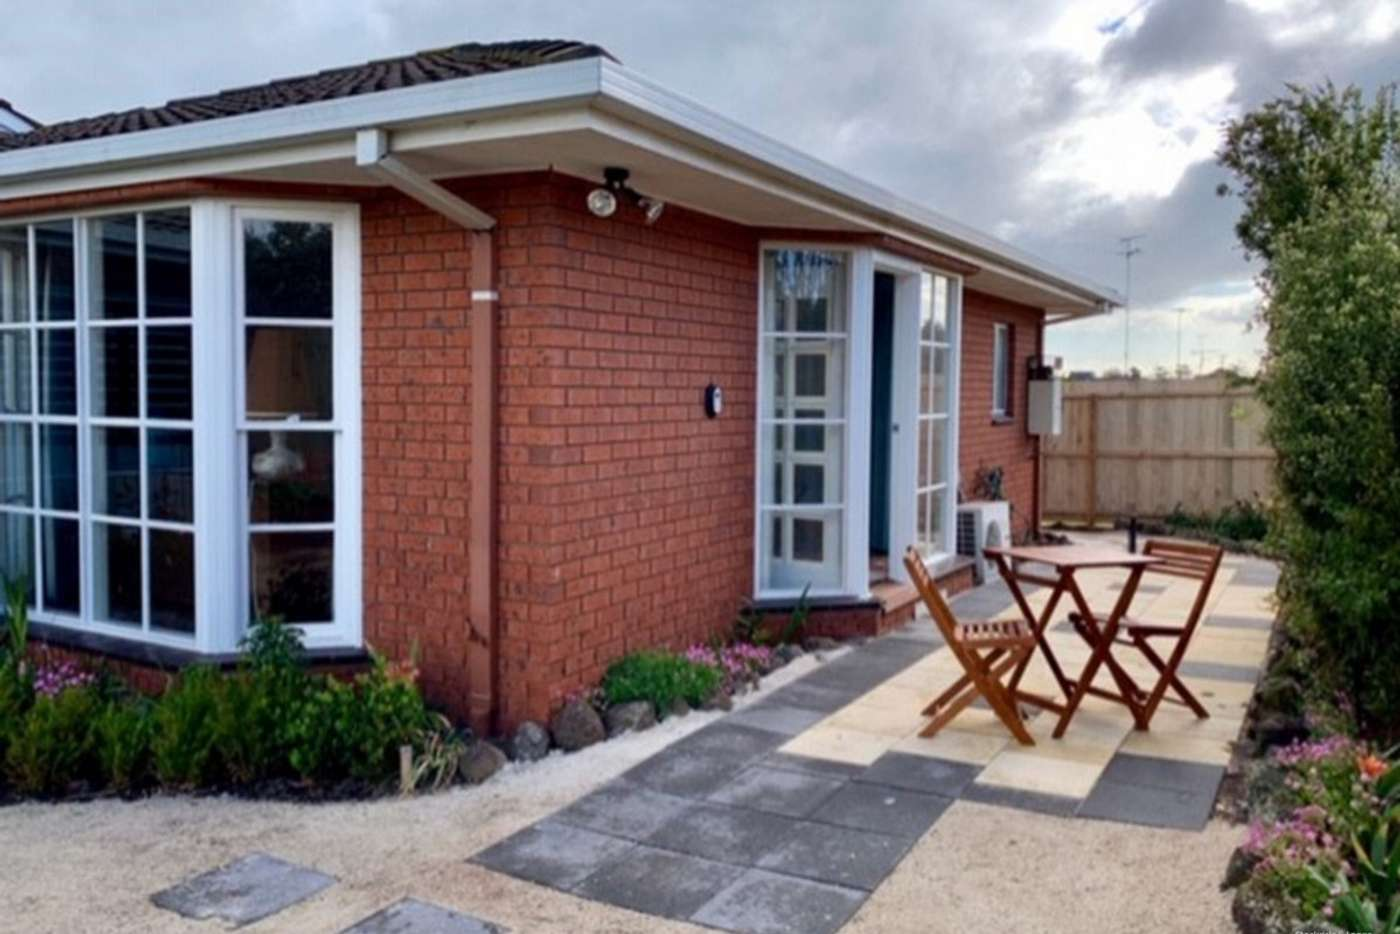 Main view of Homely unit listing, 120A Barrands Lane, Drysdale VIC 3222